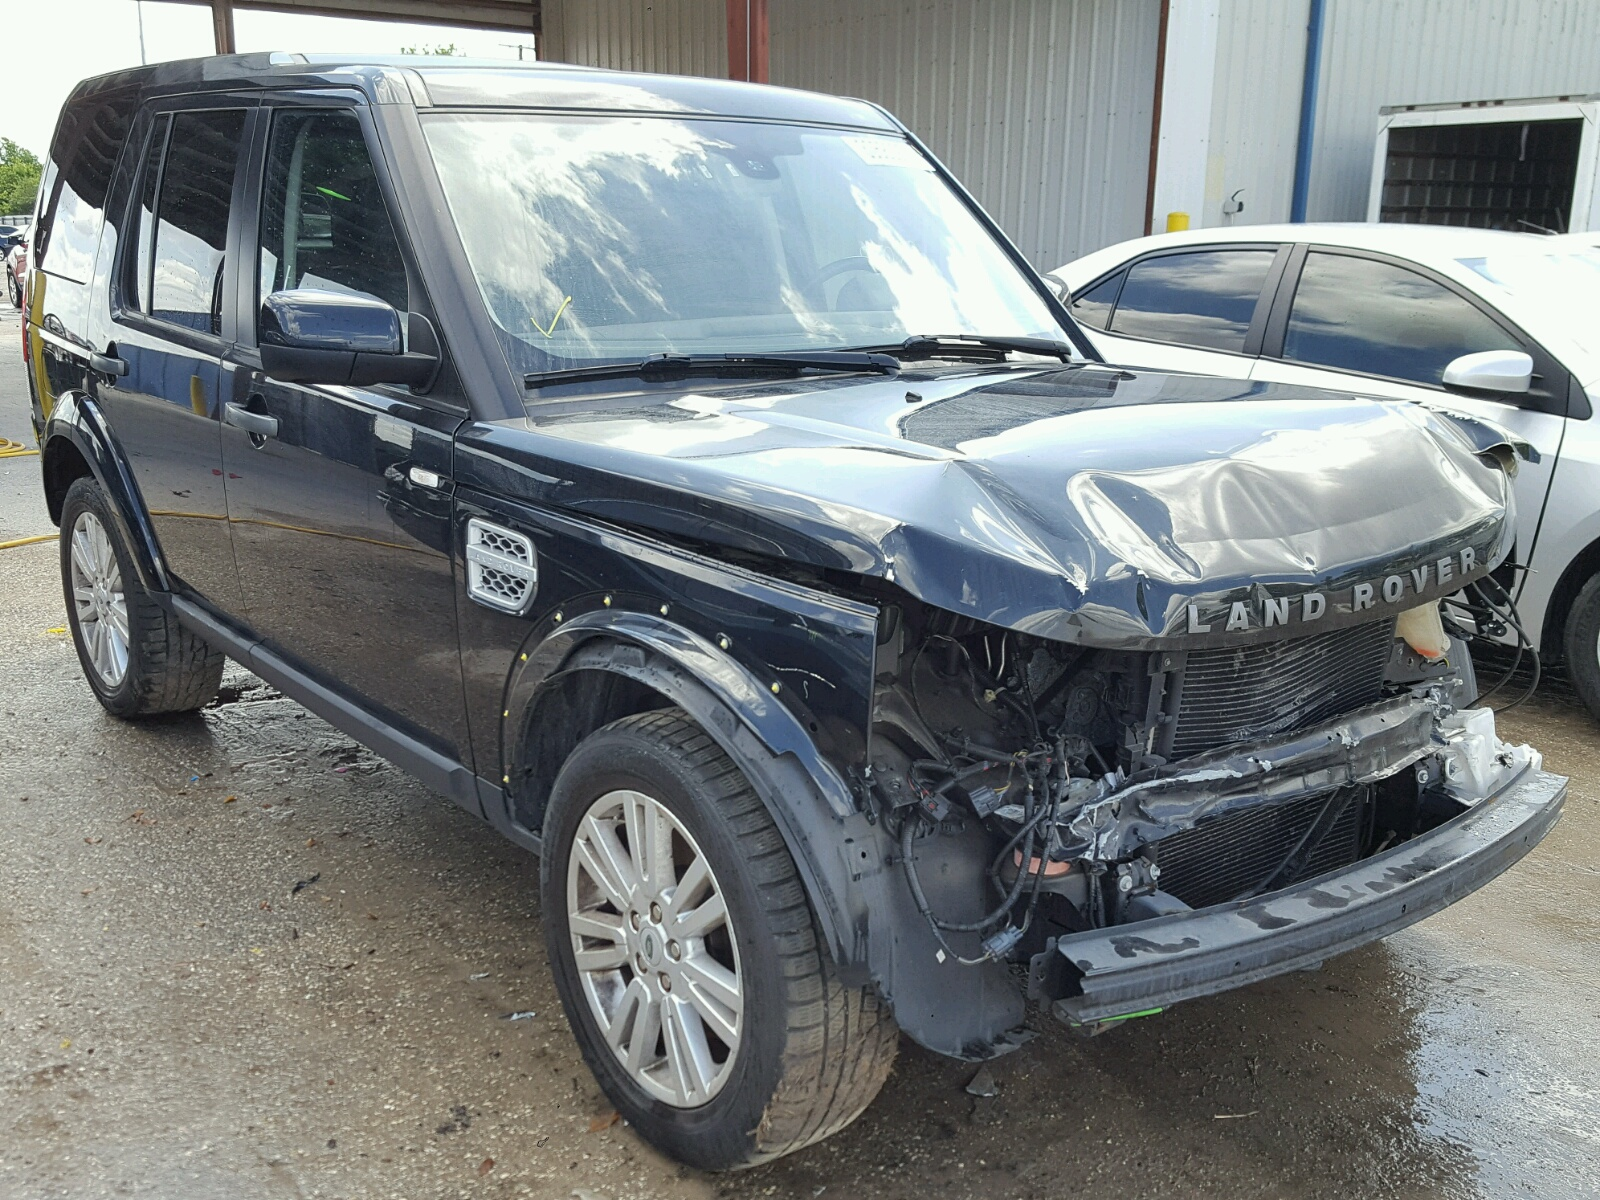 boston online hse landrover north carfinder auctions on copart of auto certificate bddc ma en silver for lot rover land title in sale